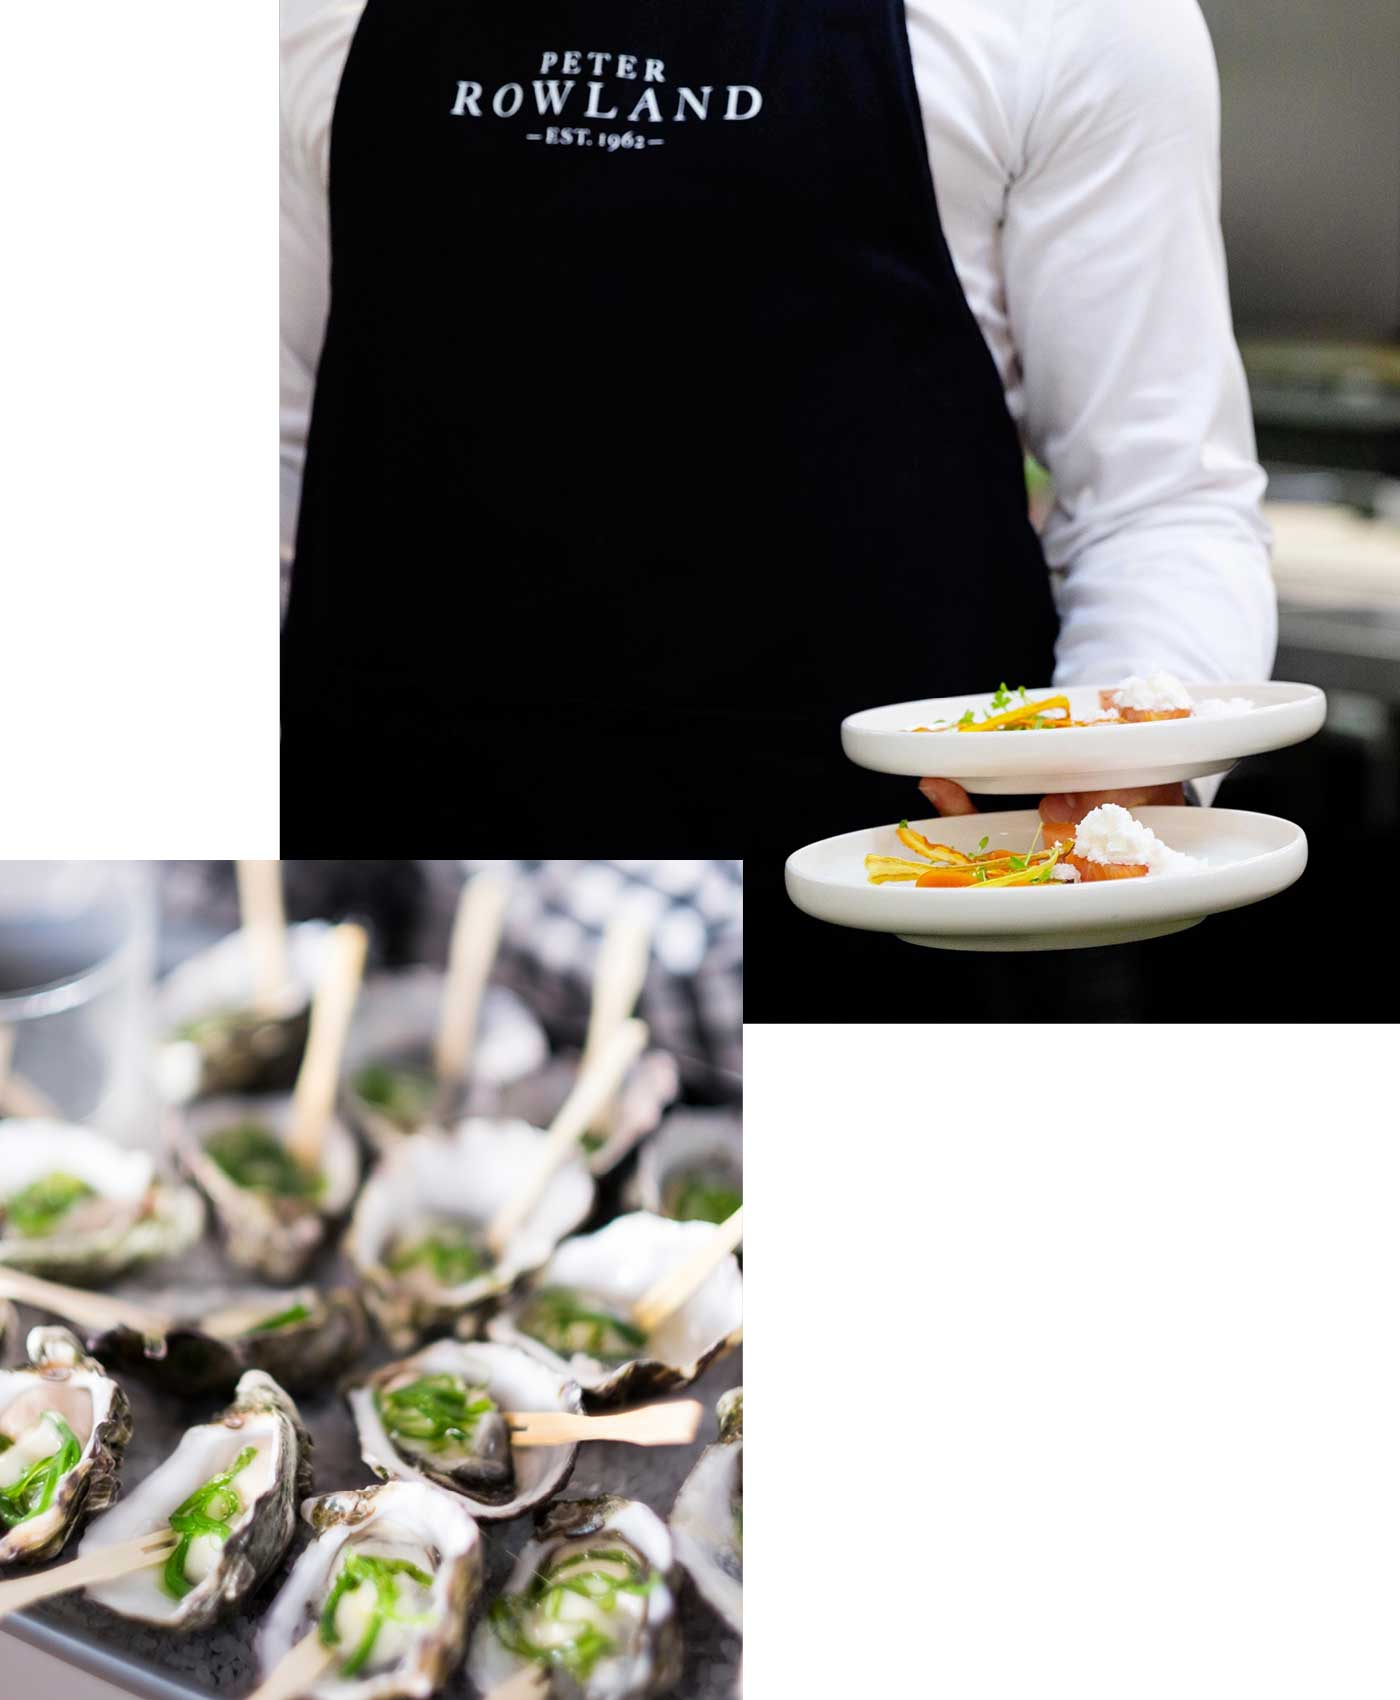 Oysters delivered with our catering services